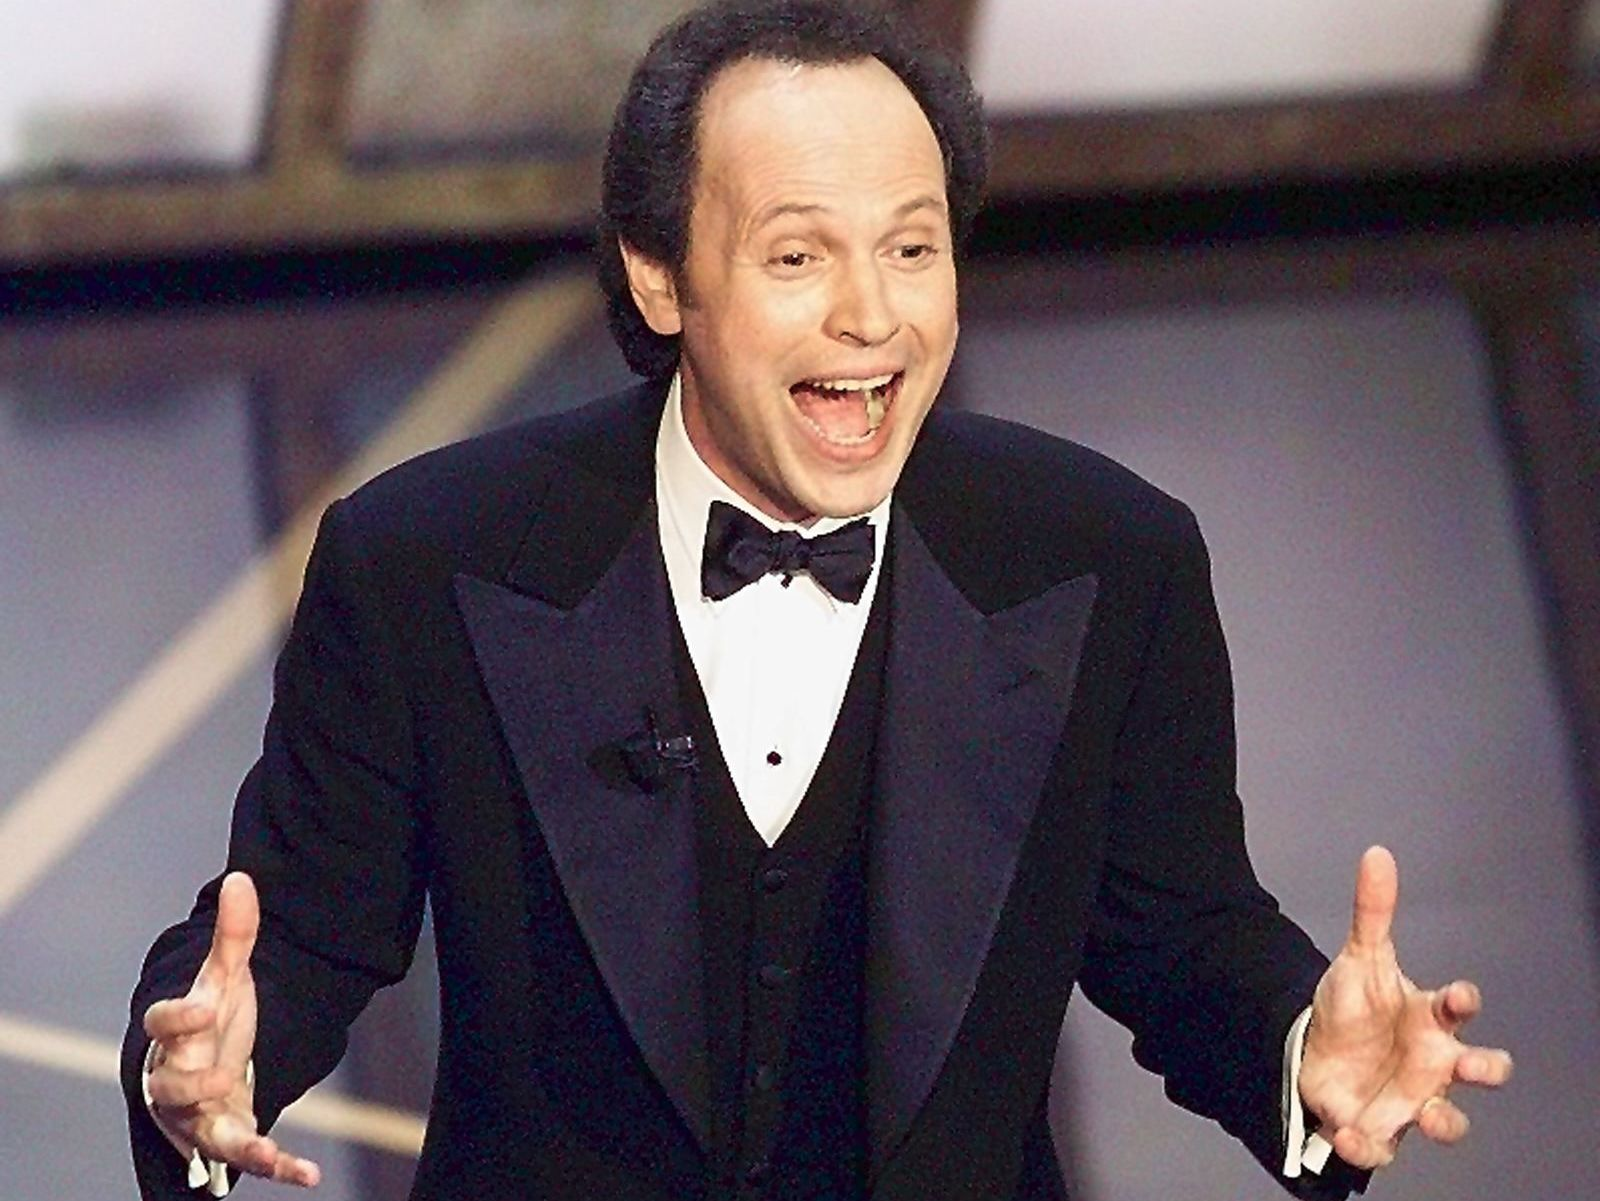 Billy Crystal Finds Fun In Growing Old (But Still Can't Find His Keys)